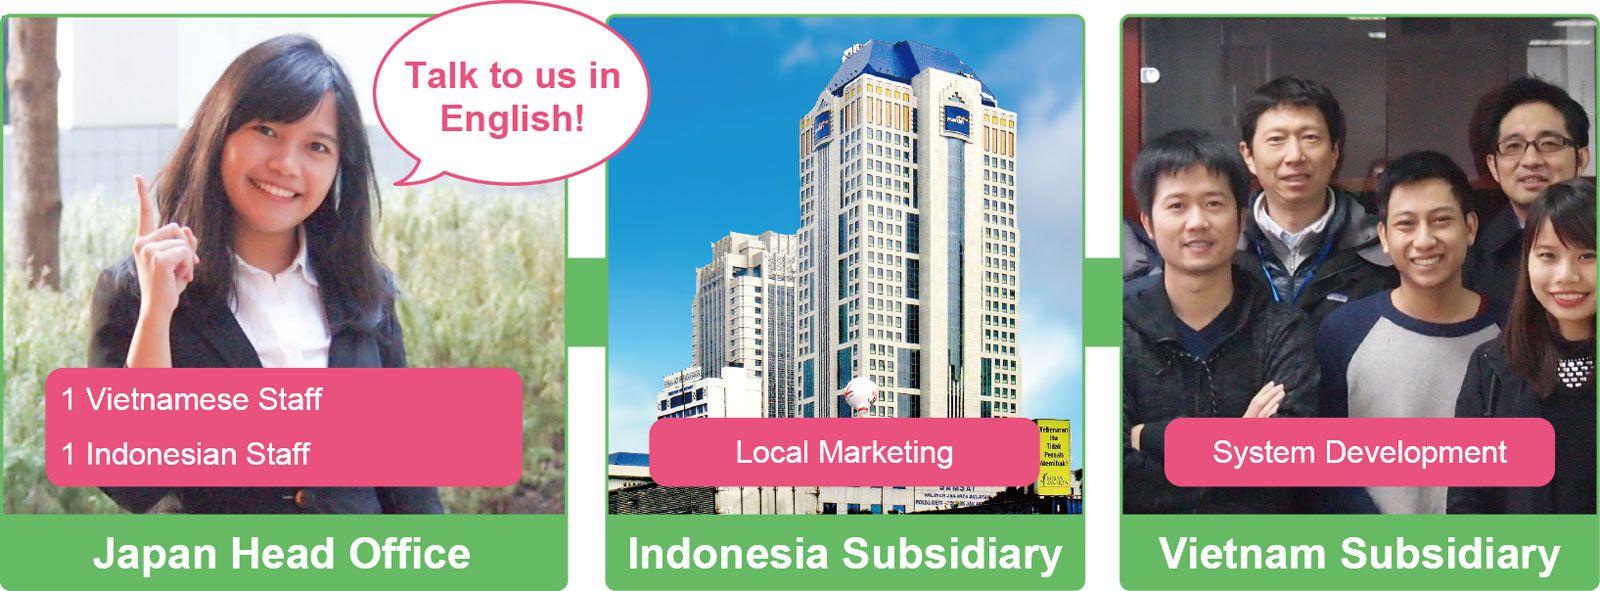 Talk to us in English! Subsidiary in Indonesia, subsidiary in Vietnam, Japan head office